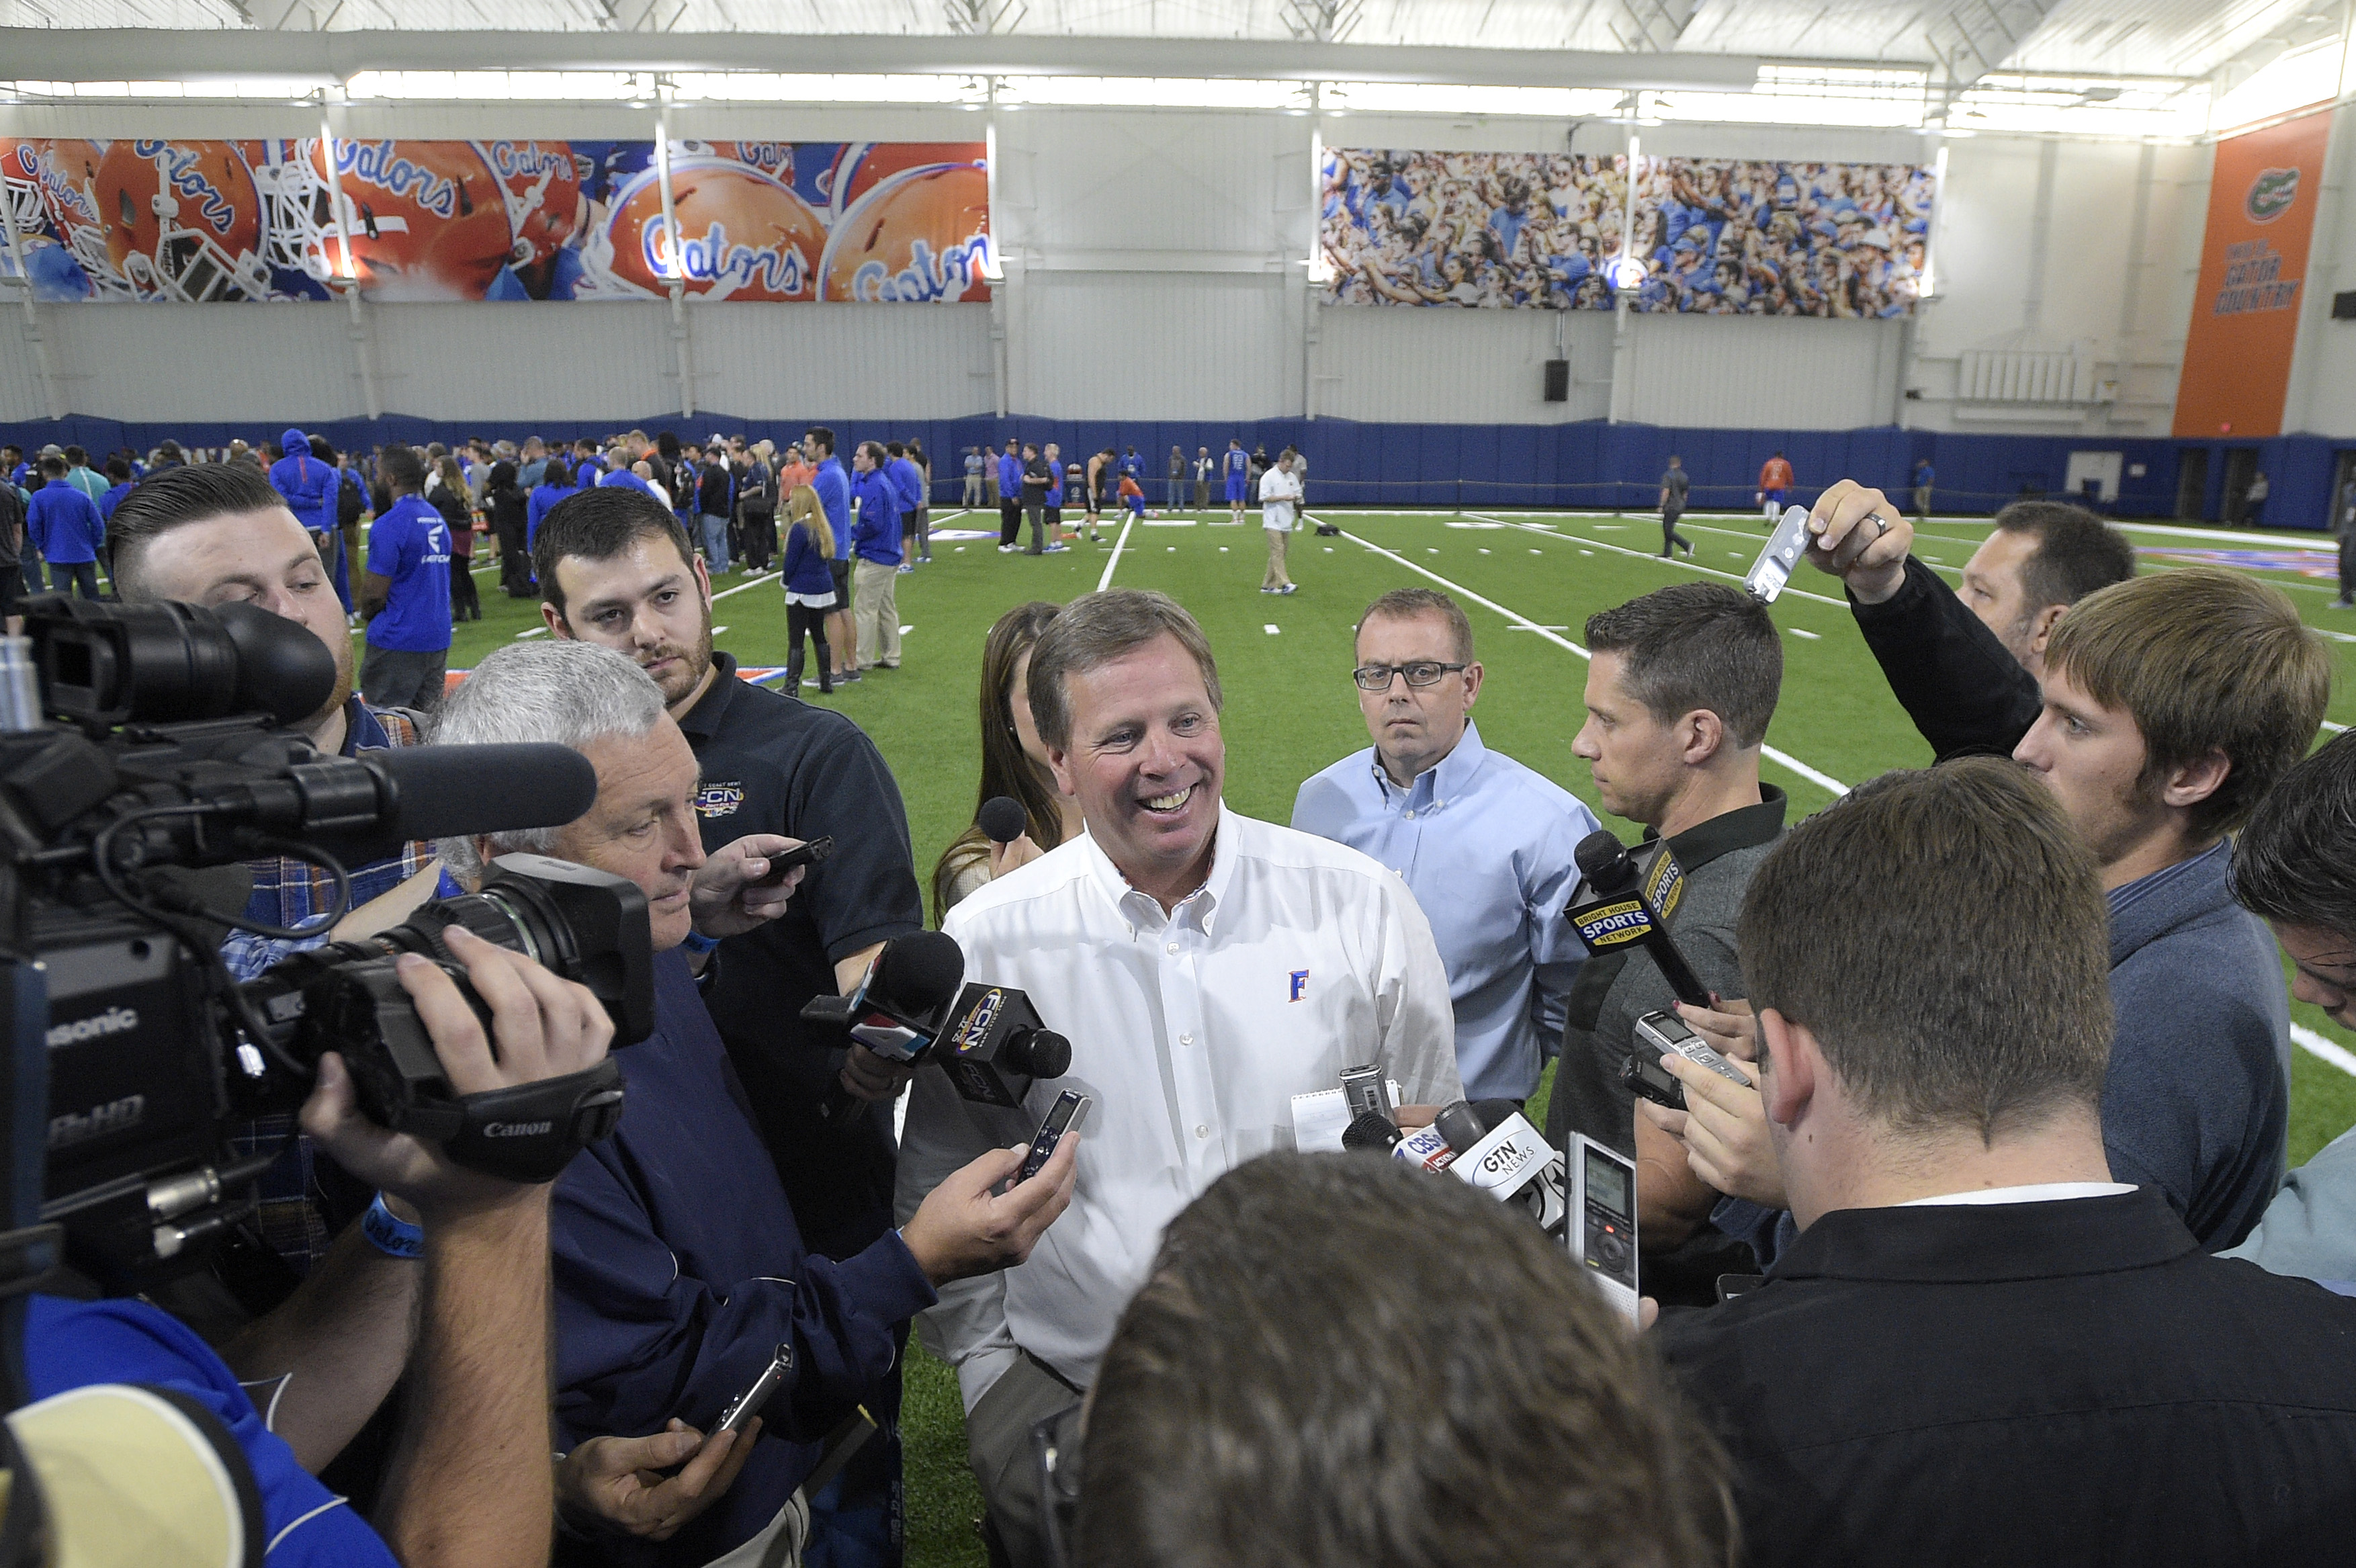 Florida head football coach Jim McElwain, center, answers questions from reporters during Florida's NFL Pro Day in Gainesville, Fla., Tuesday, March 22, 2016. (AP Photo/Phelan M. Ebenhack)